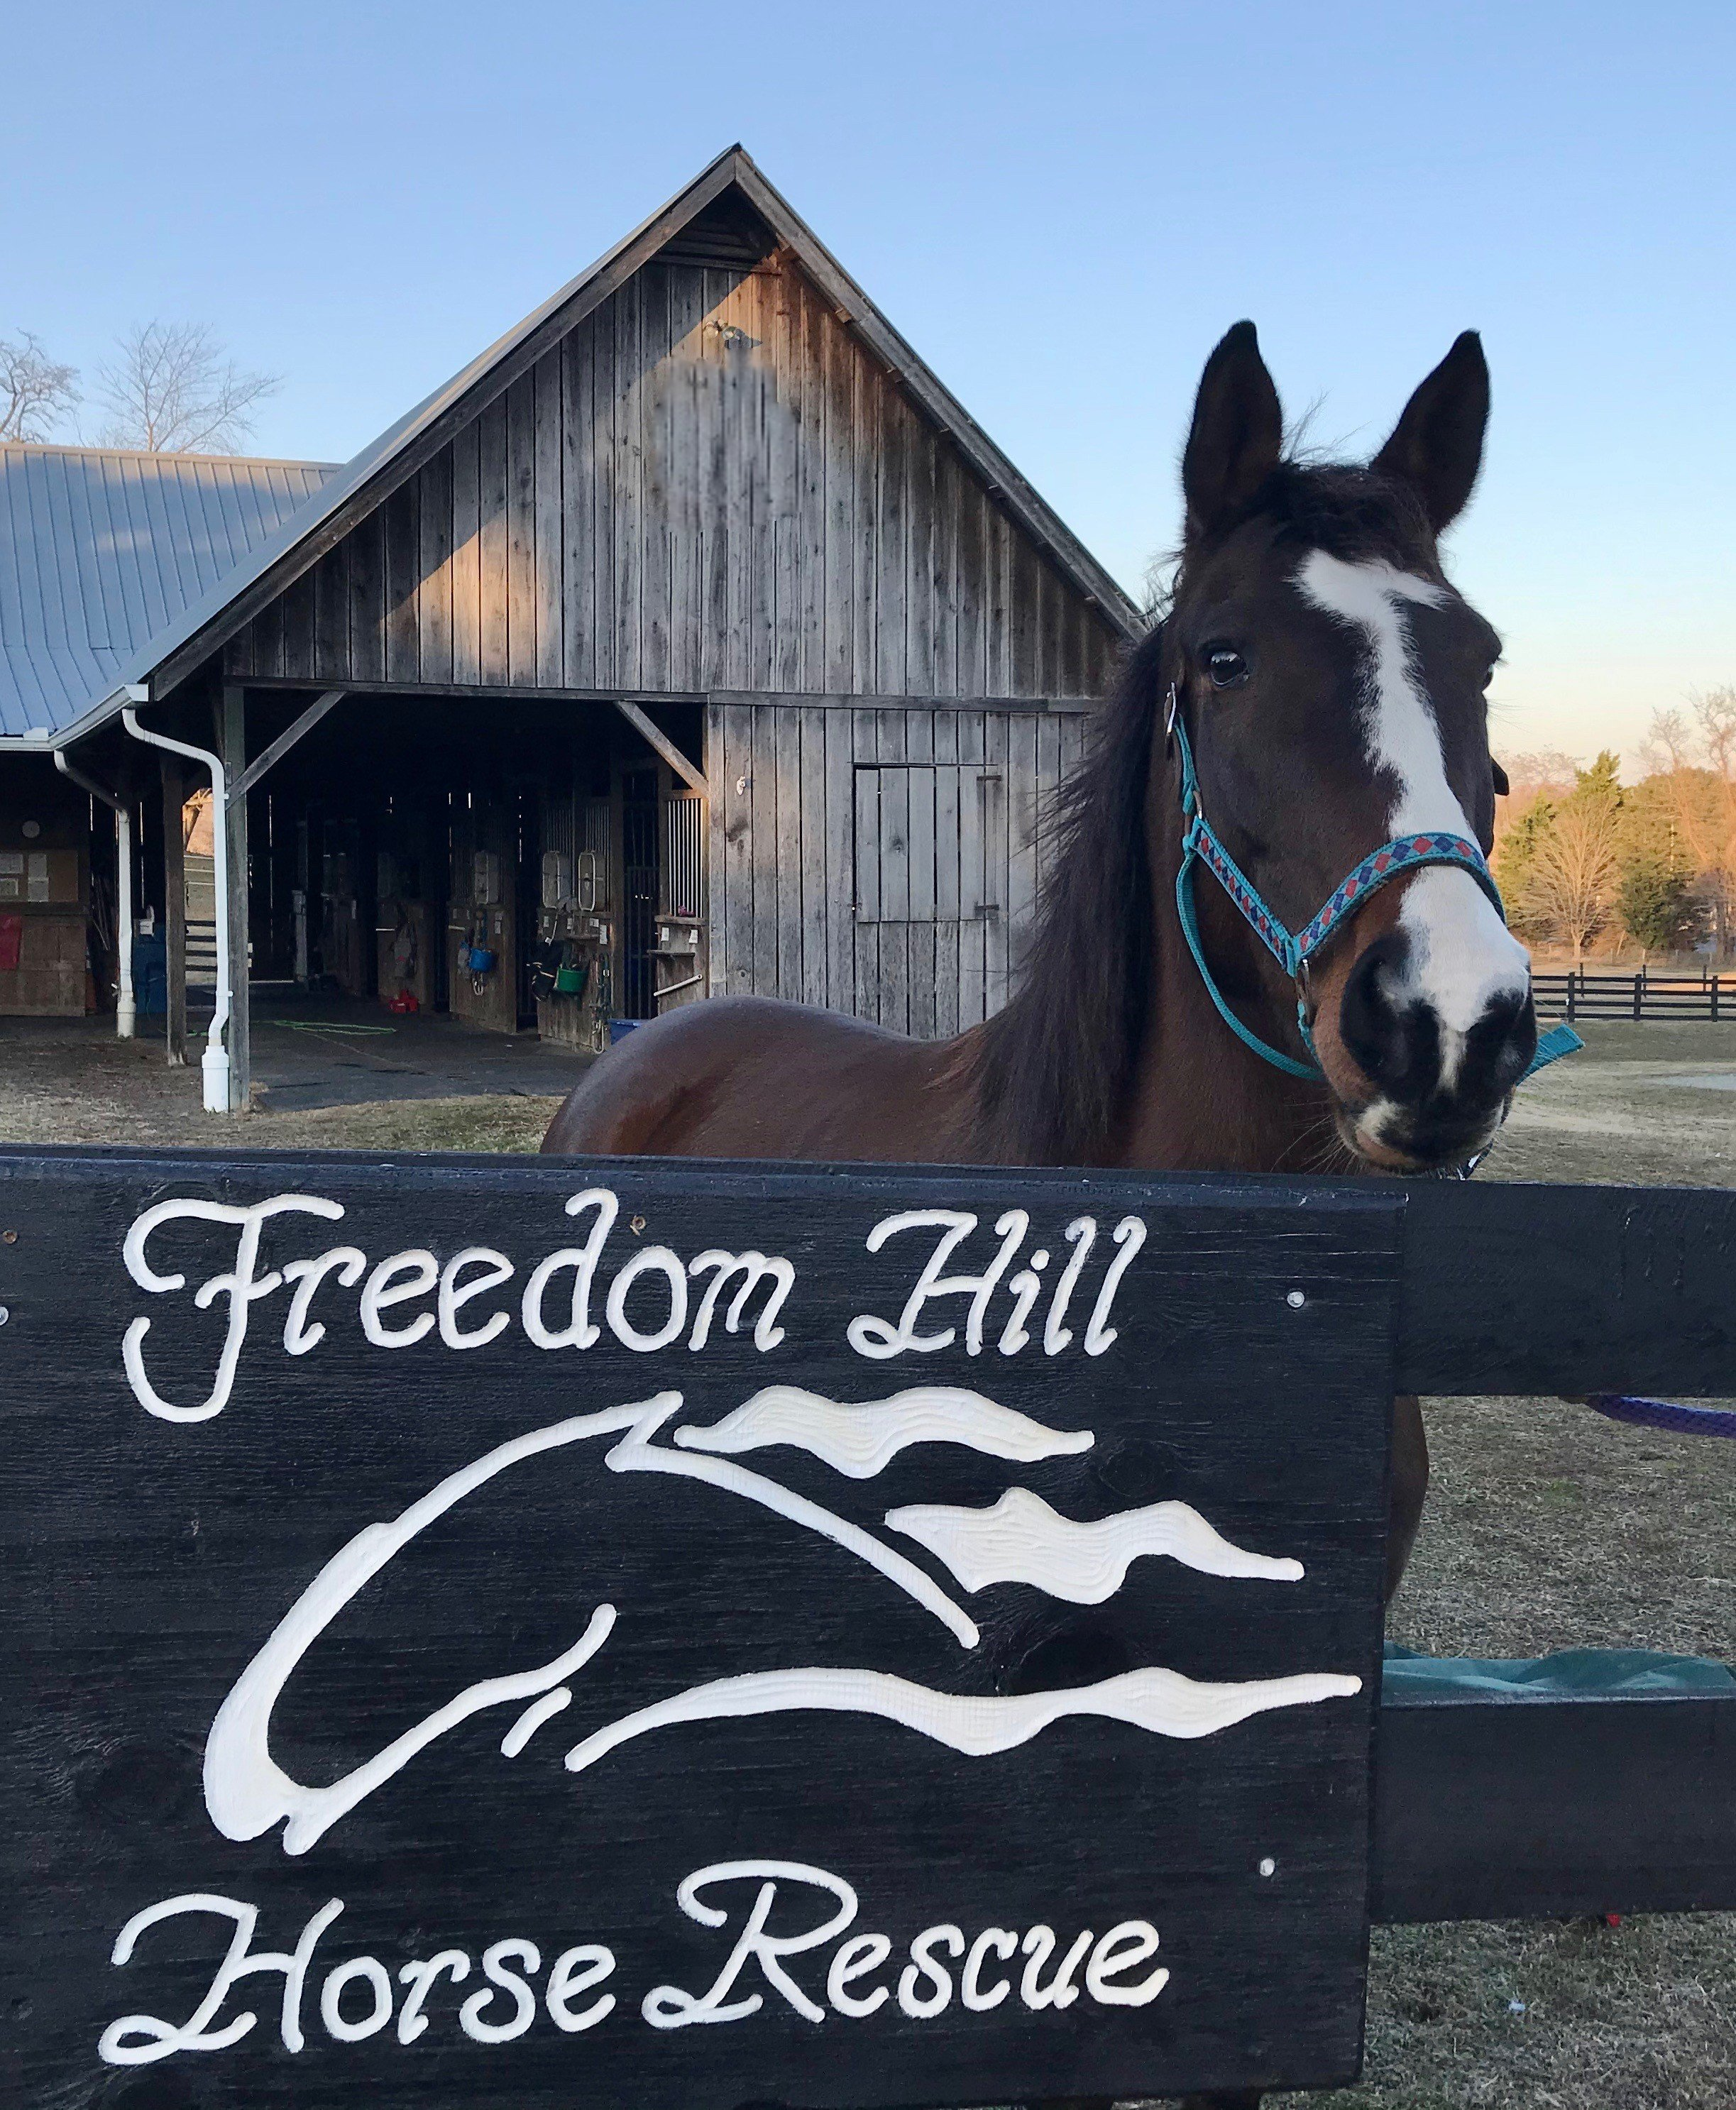 Freedom Hill Horse Rescue Of Owings Maryland Is Verified By Global Federation Of Animal Sanctuaries Global Federation Of Animal Sanctuaries